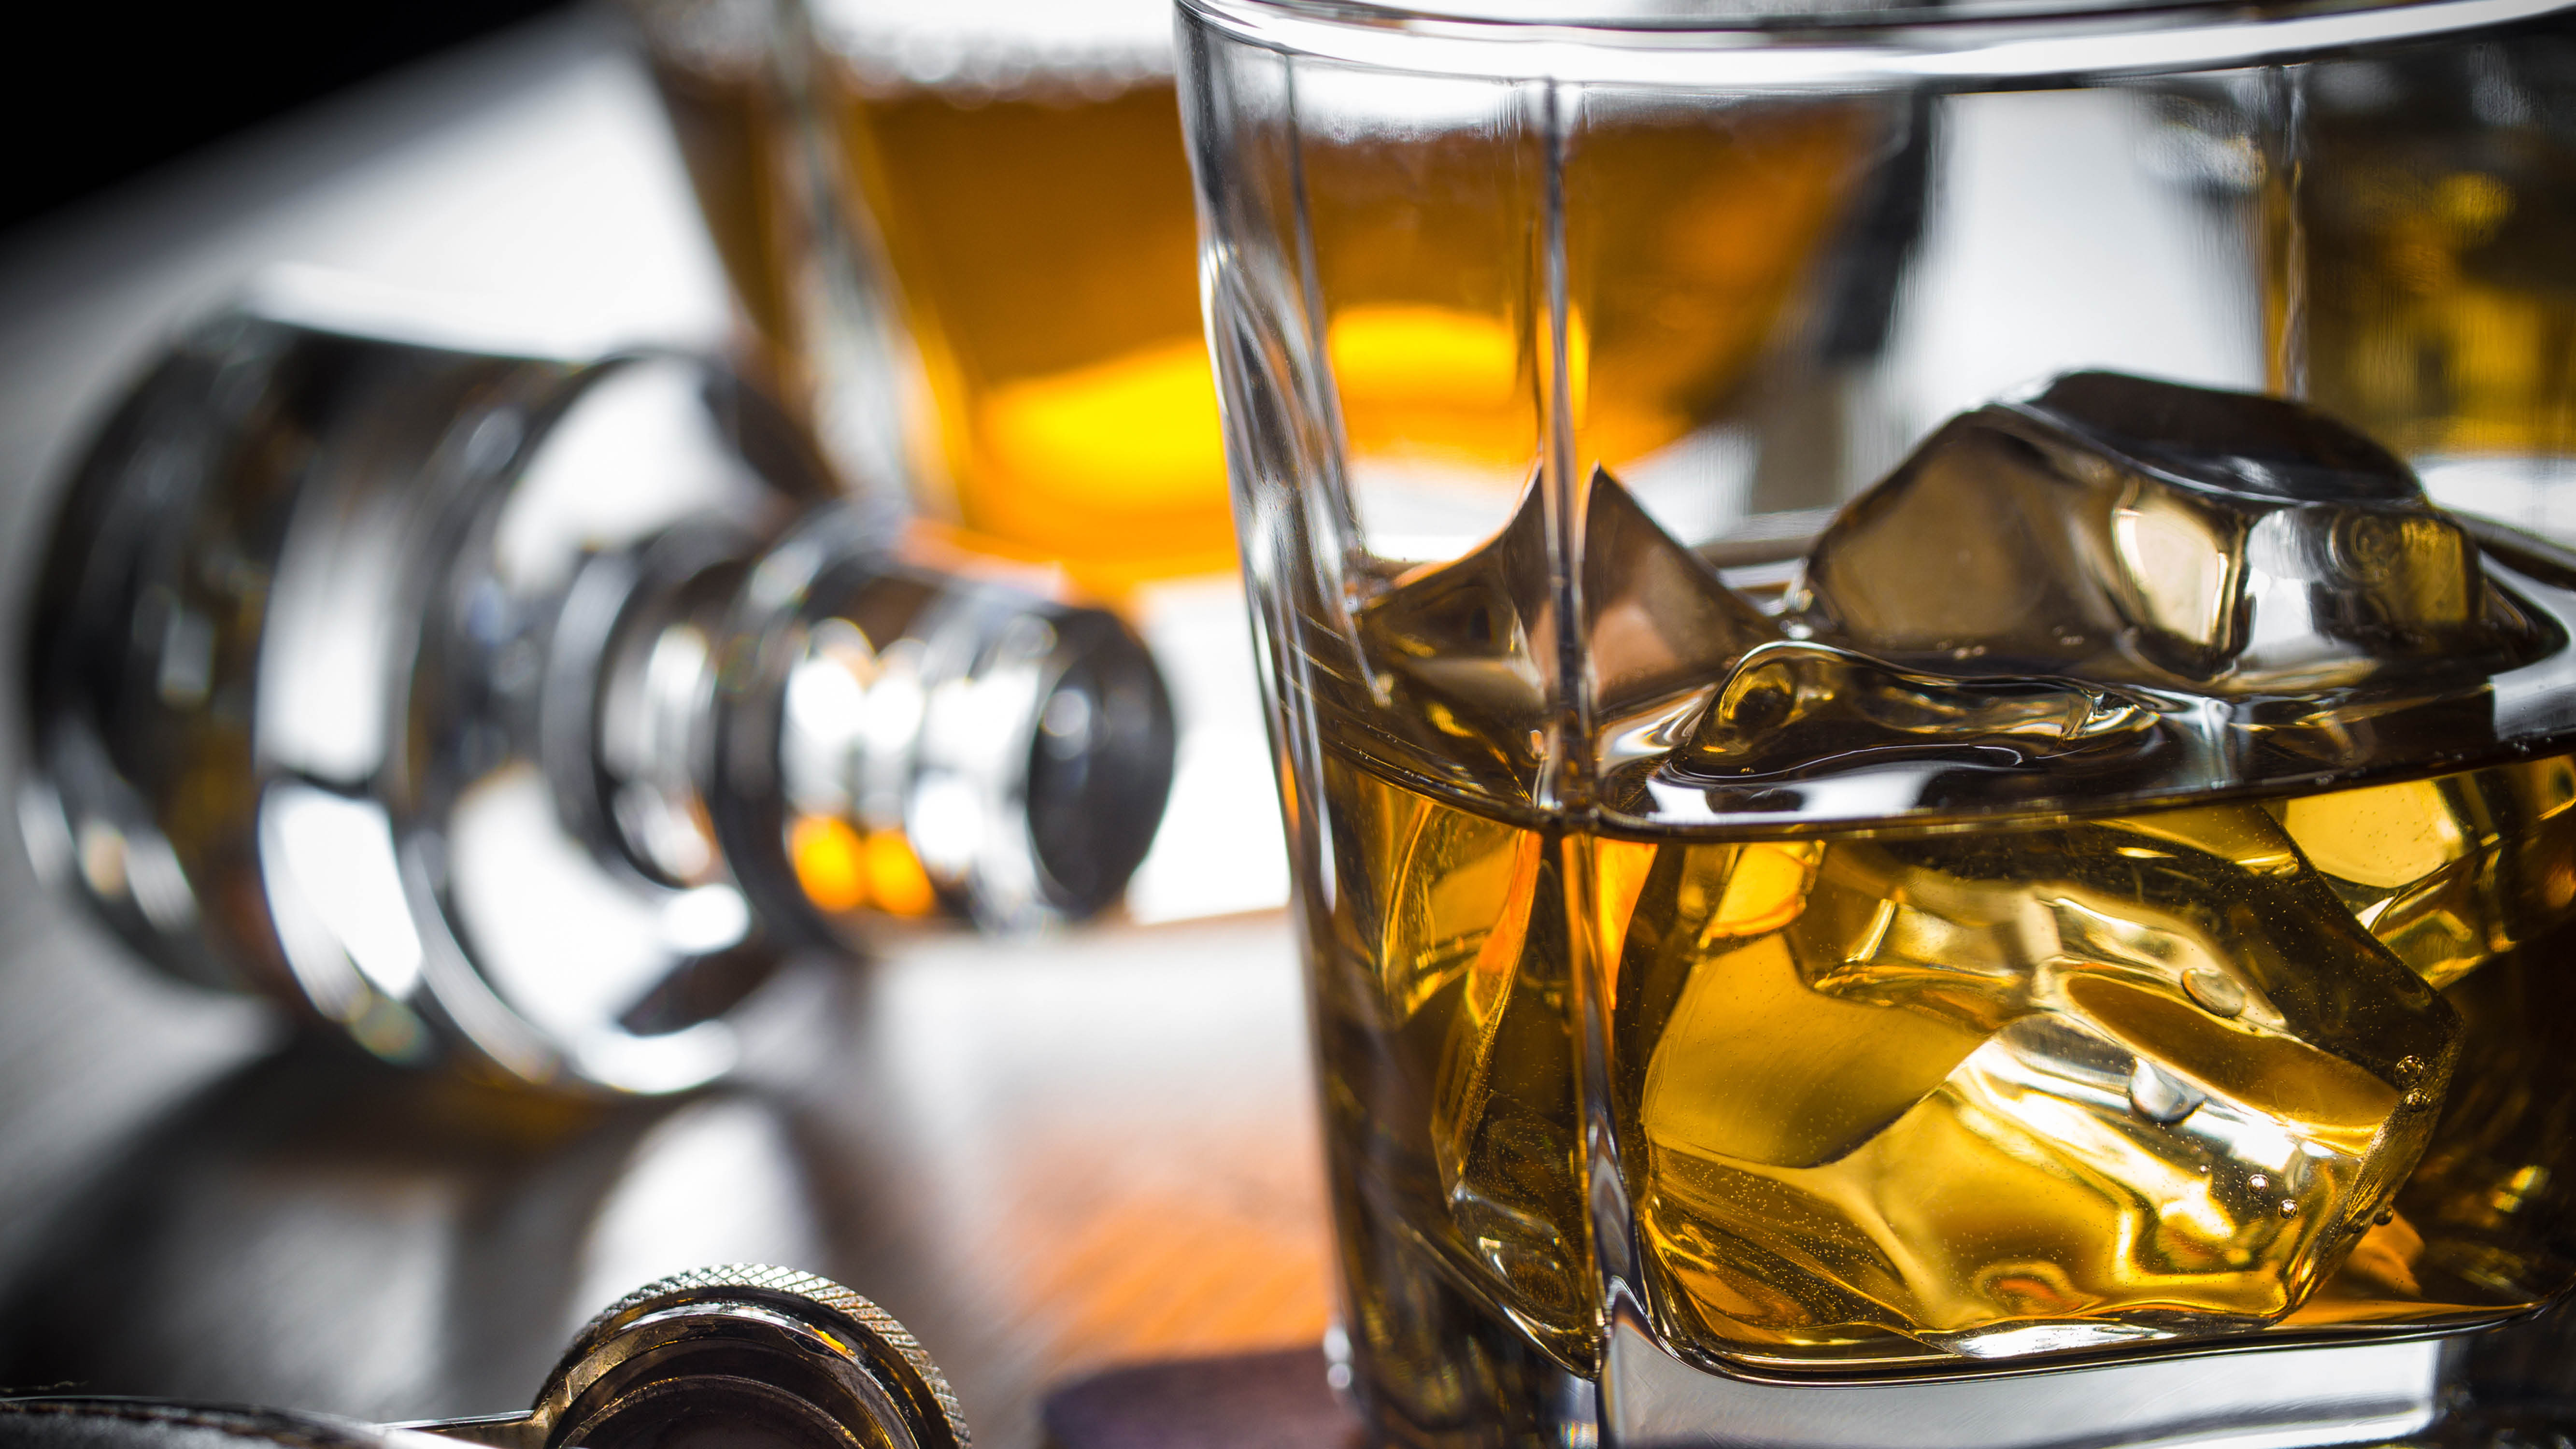 whisky-whisky-glass-closeup.jpg